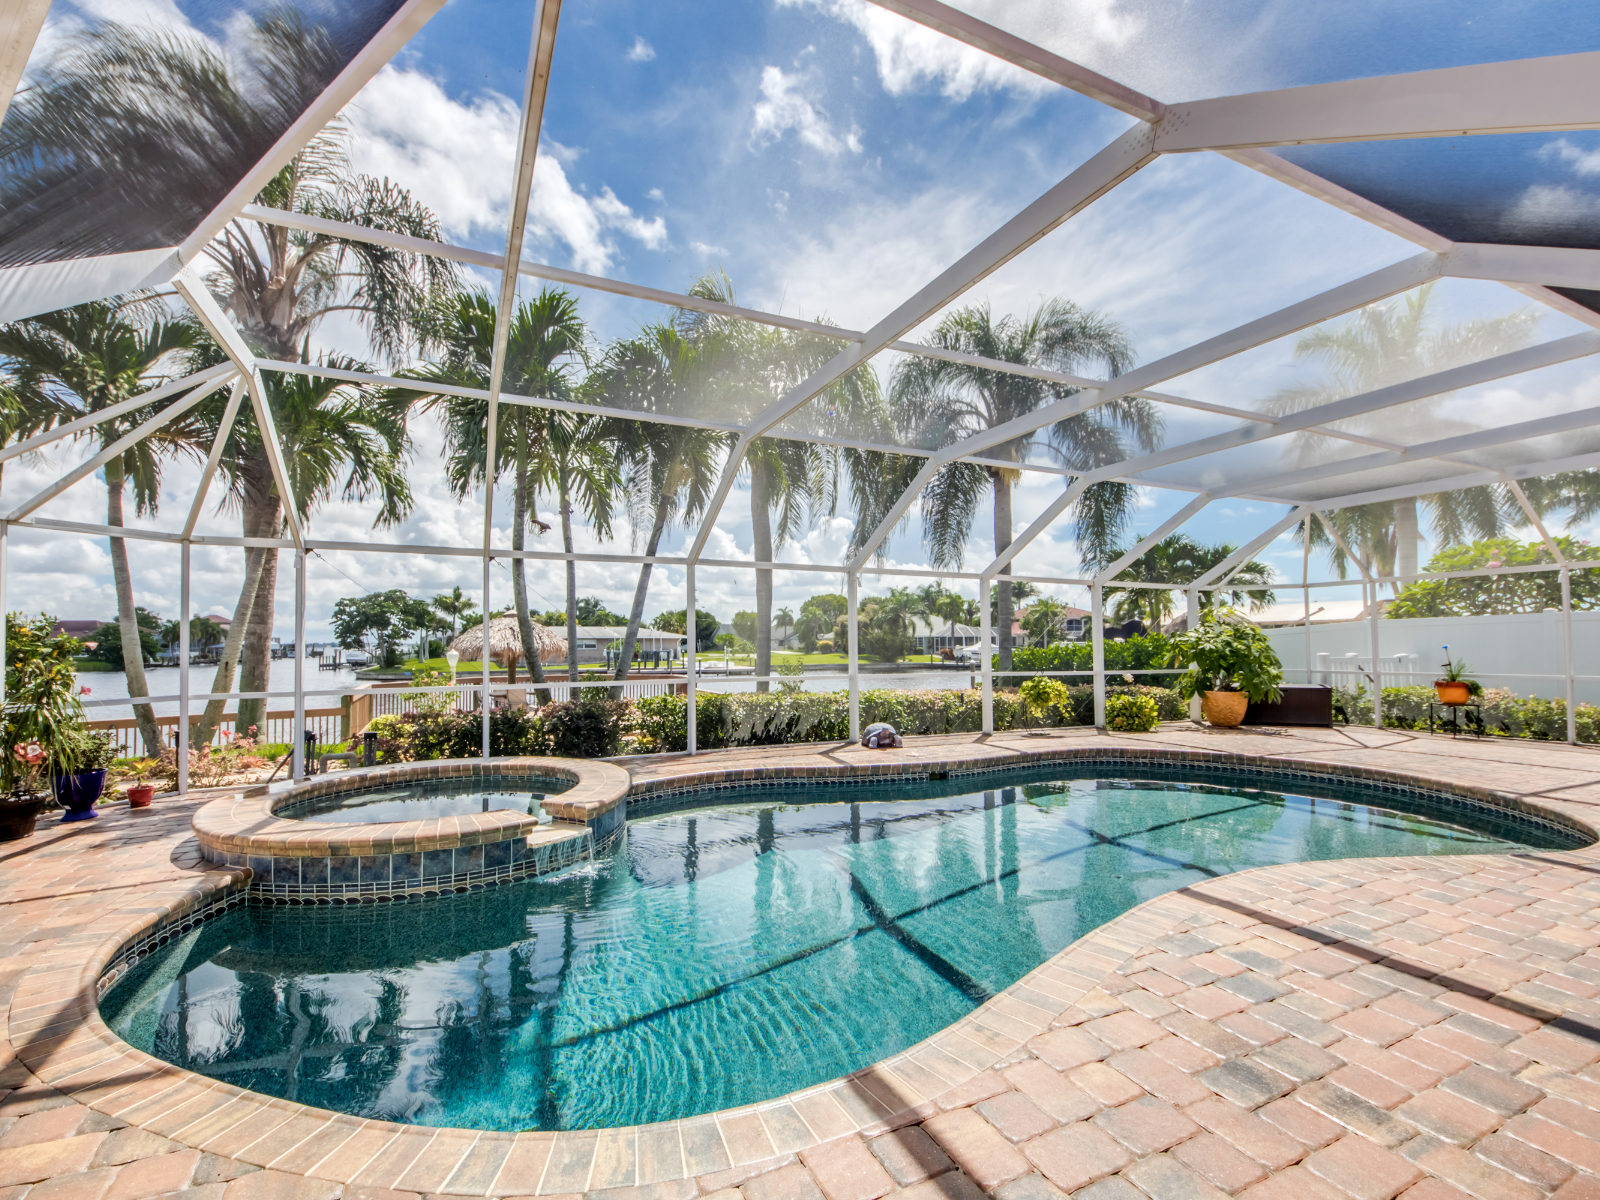 The Value of a Pool Home